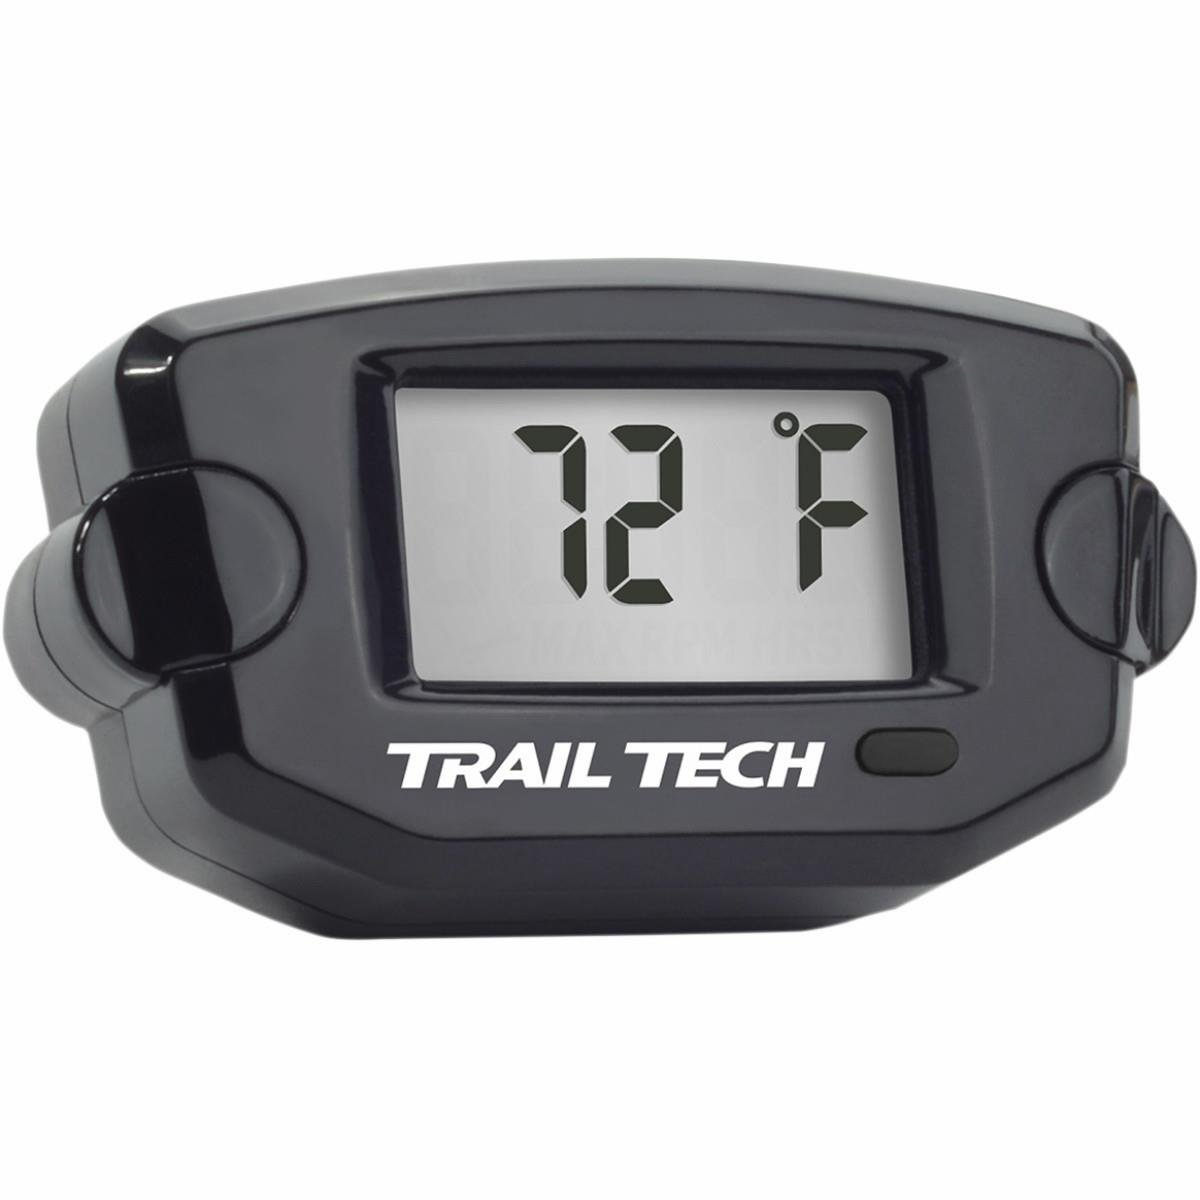 Trail Tech 732-ES2 Panel Mount Universal Temperature Mount w/Radiator Screw Sensor - 1/8-28 BSPP - Black 4333041868